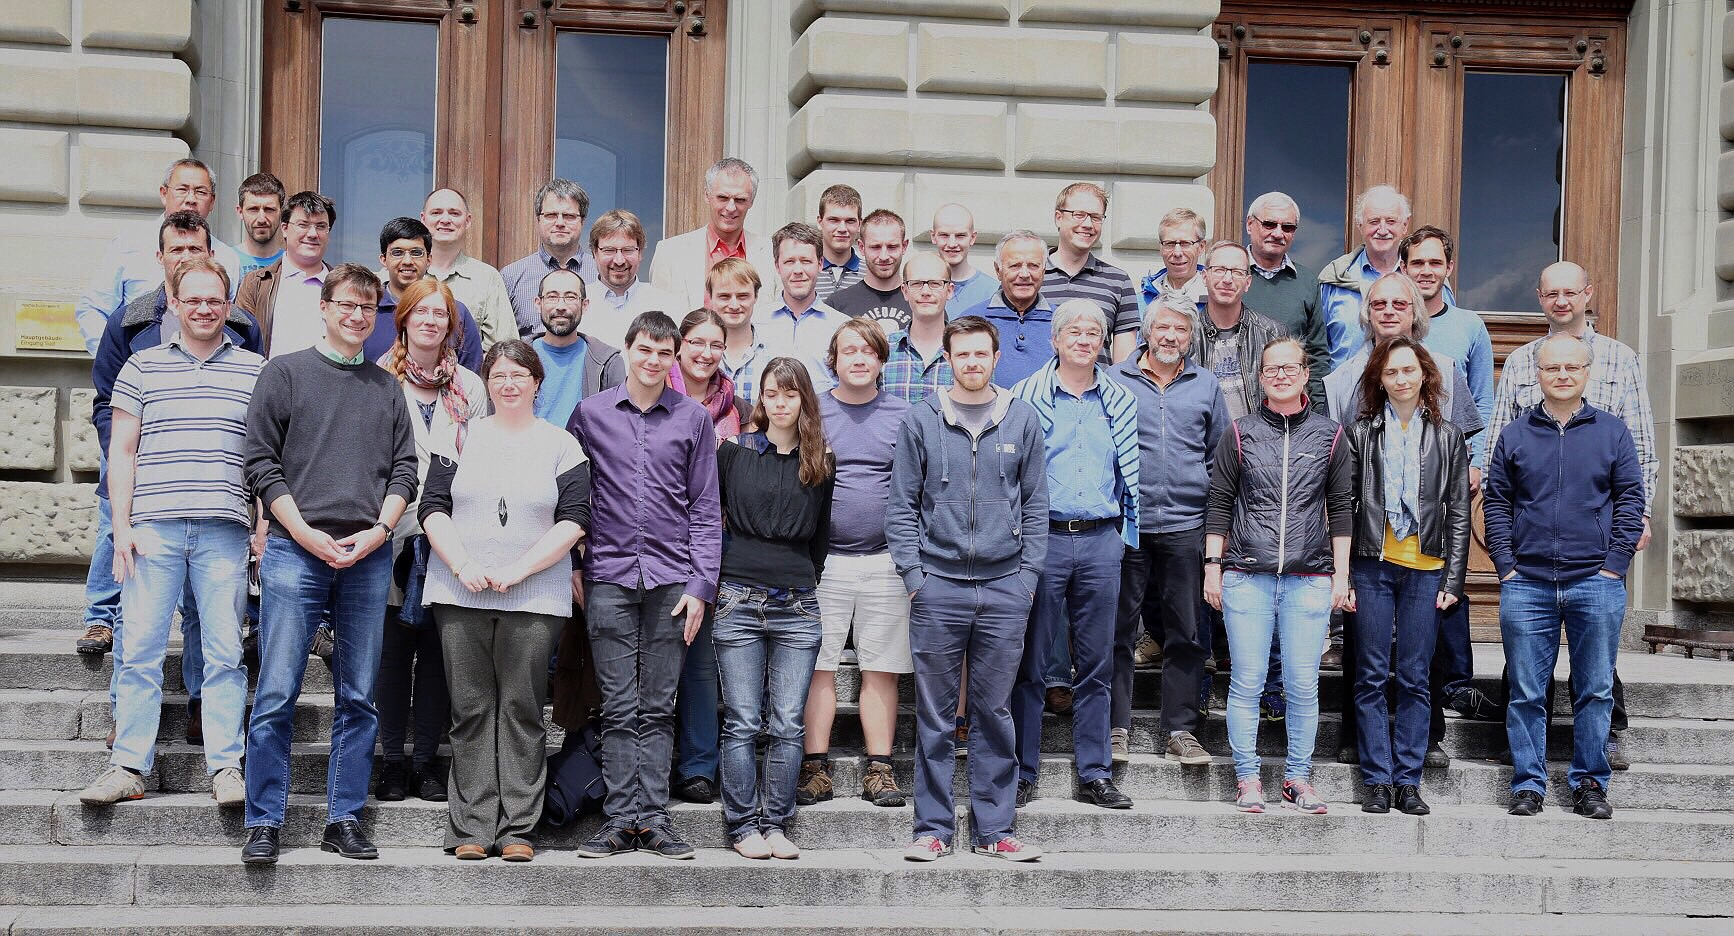 Picture taken at our collaboration meeting at Universität Bern, 12. May 2017